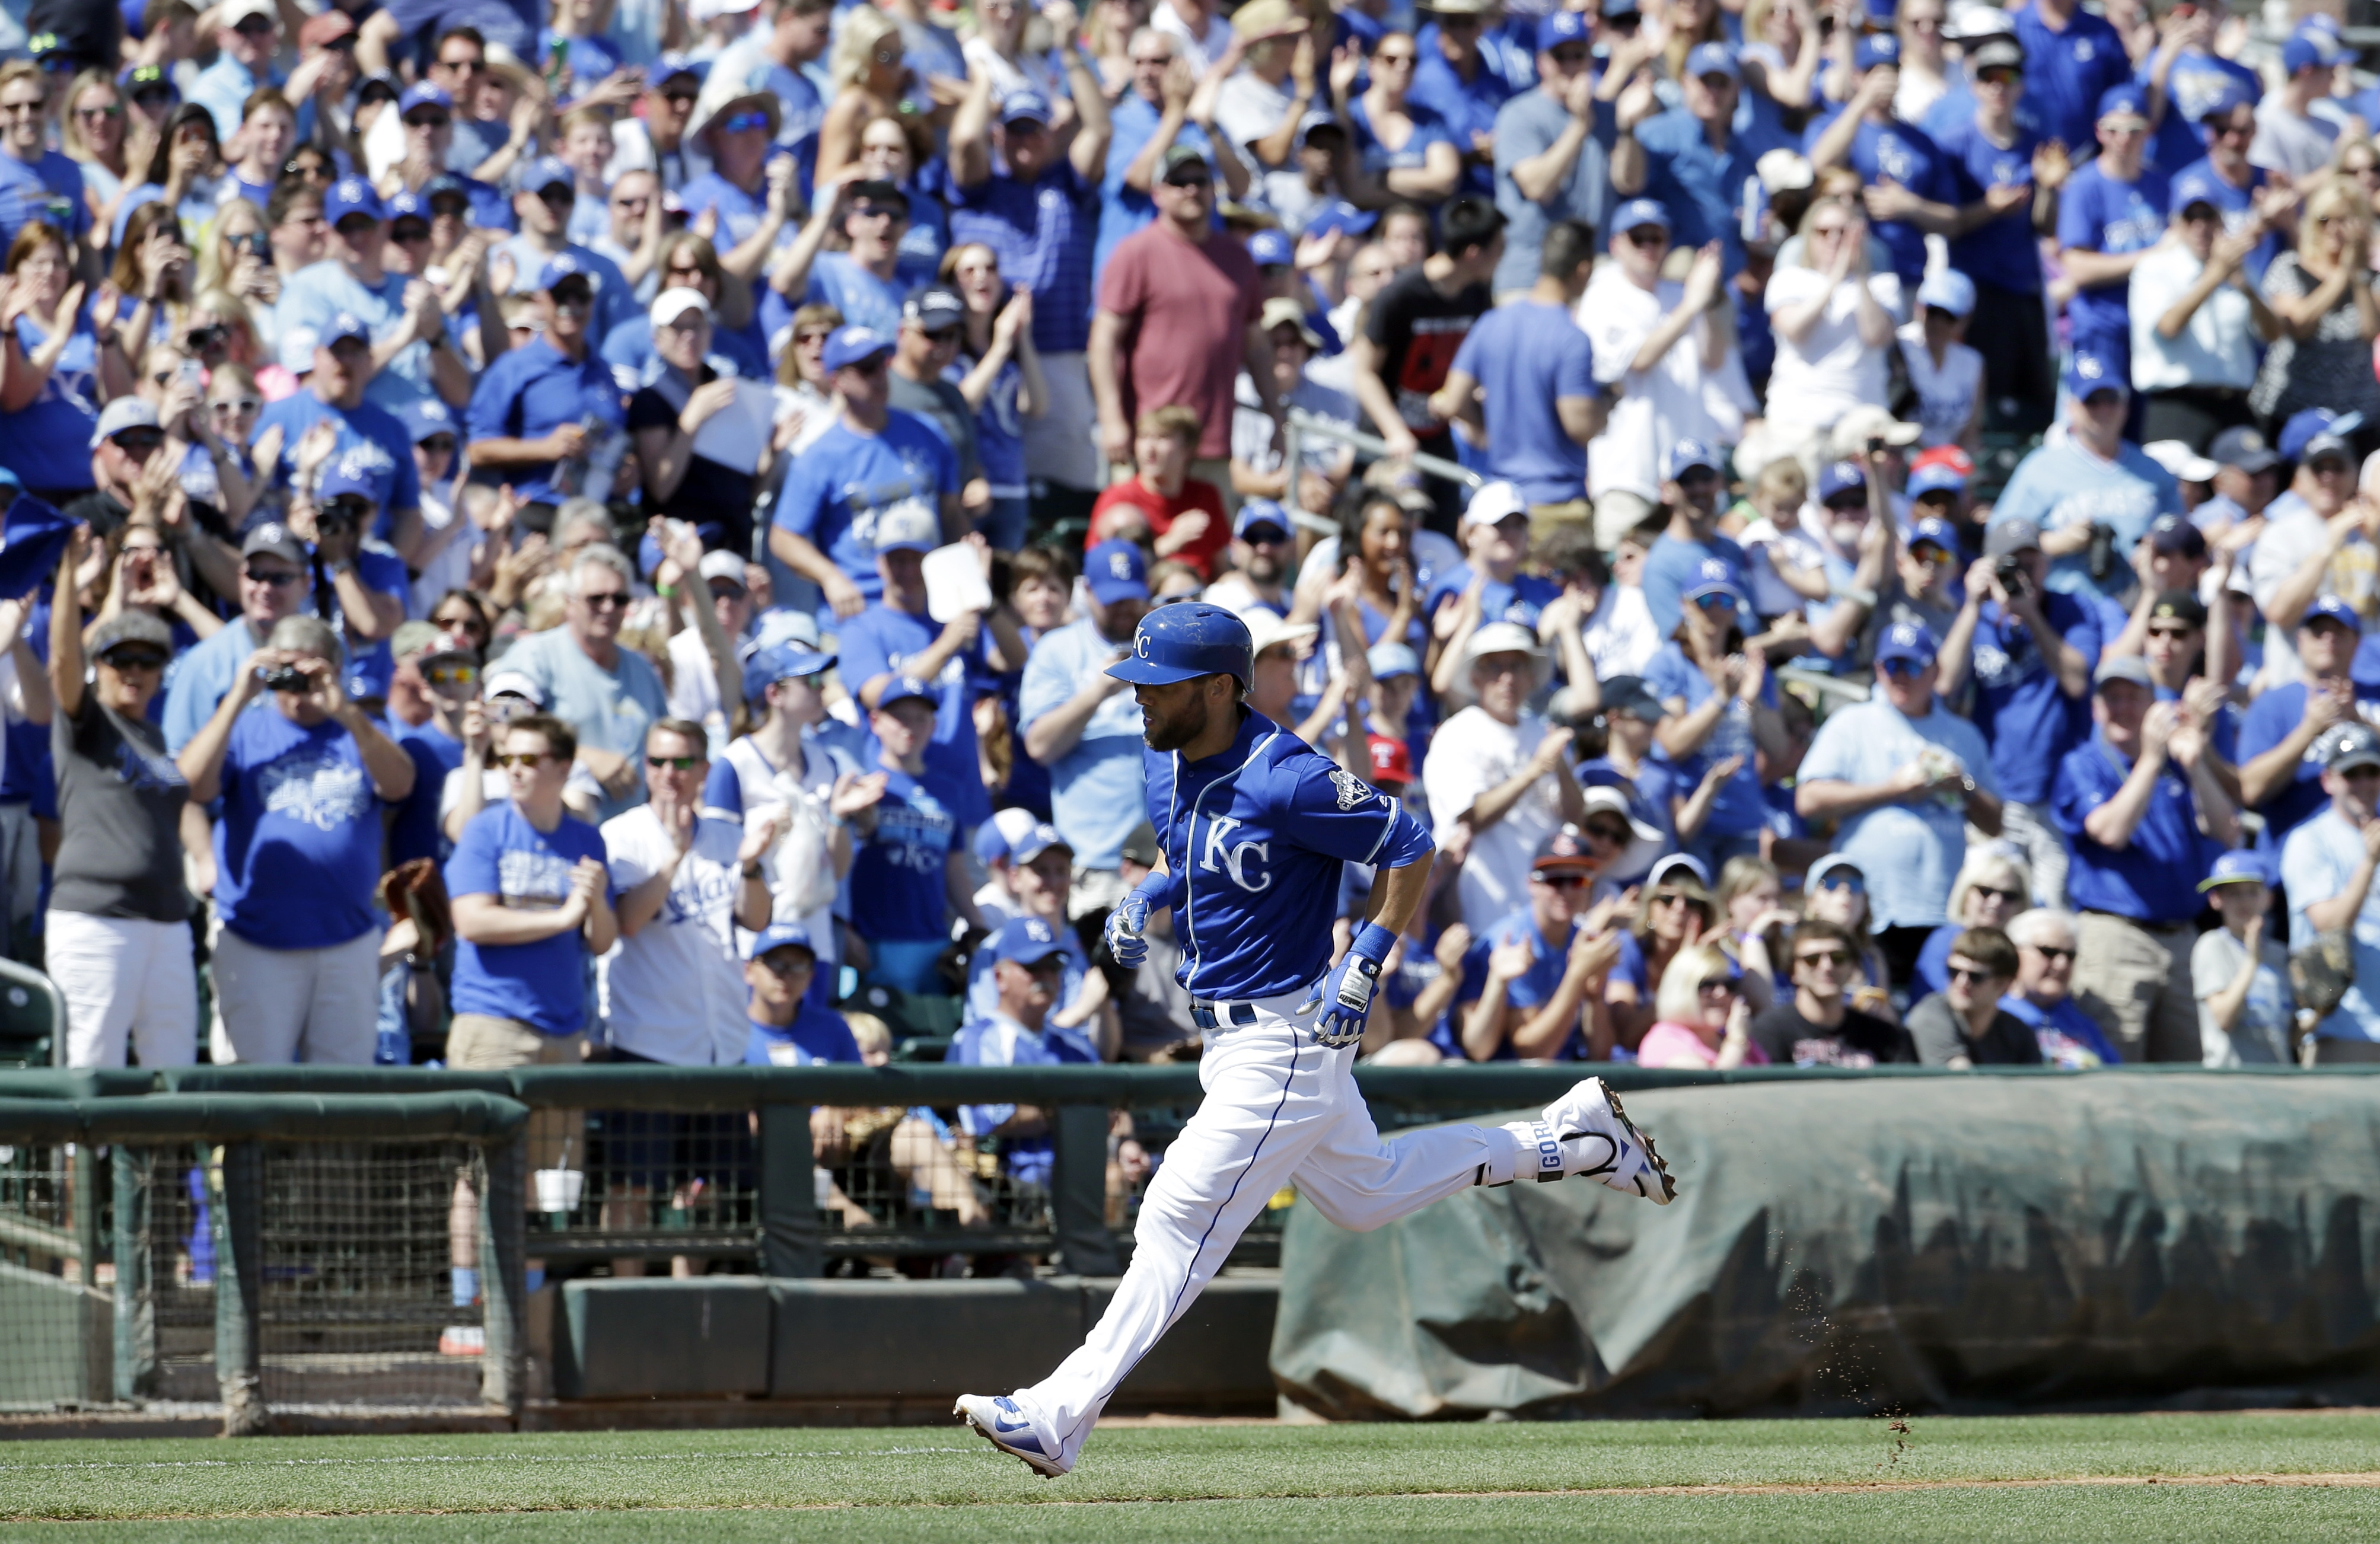 FILE - In this March 14, 2016 file photo, Kansas City Royals' Alex Gordon trots home after hitting a home run during a spring training baseball game against the Chicago White Sox in Surprise, Ariz. The Royals believe they can win a second straight World S